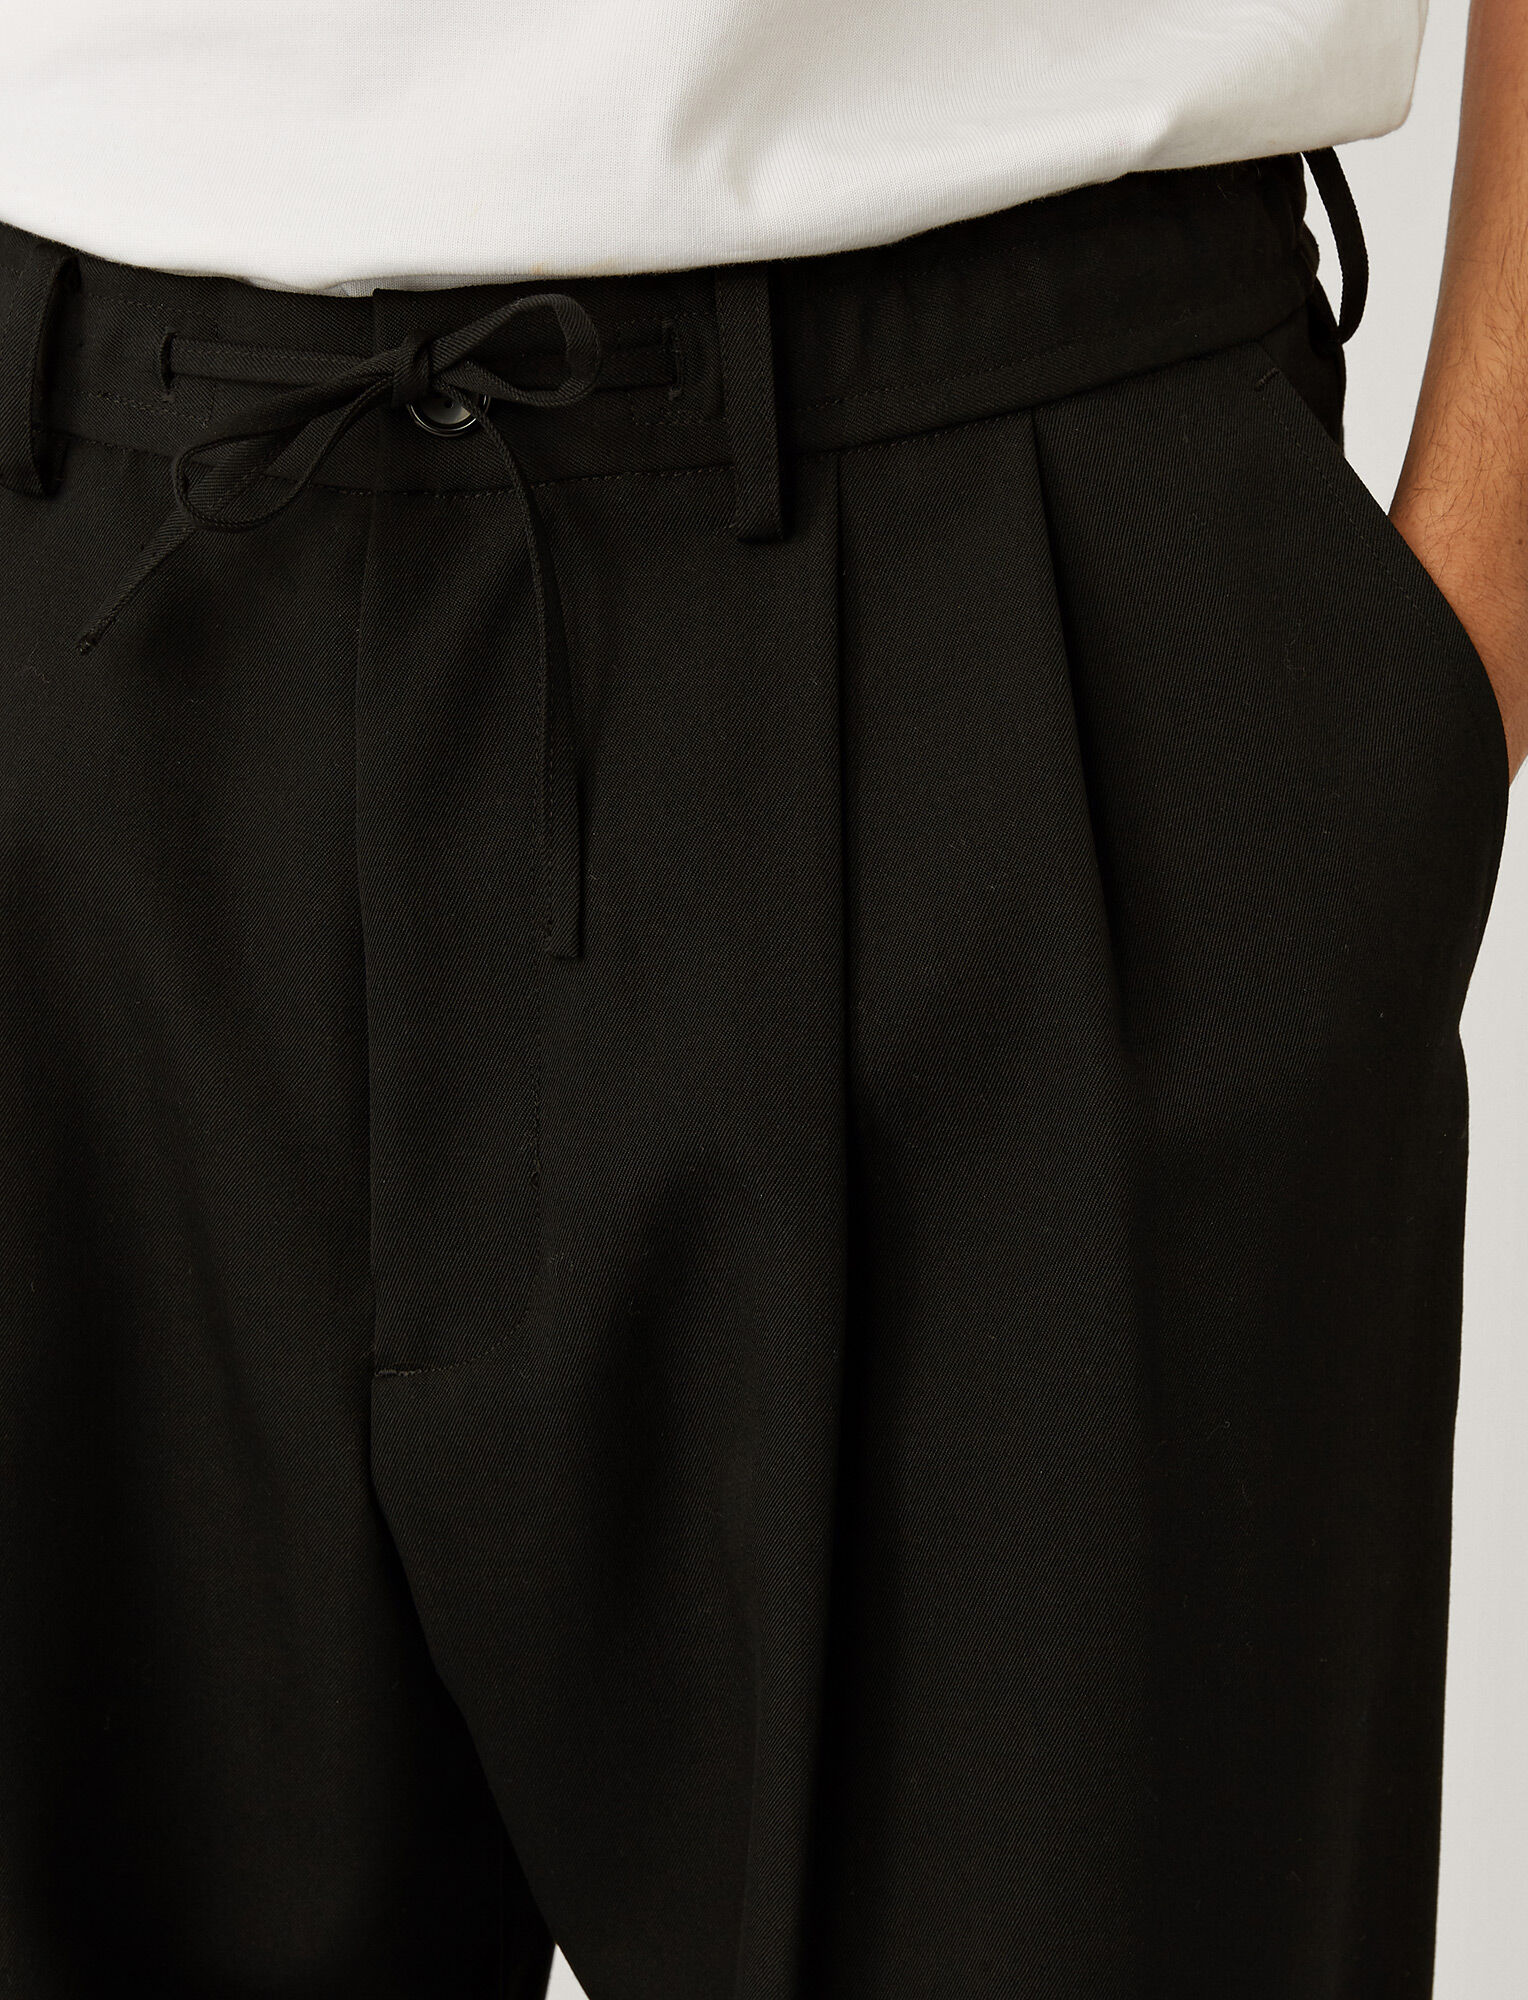 Joseph, Japanese Wool Trousers, in Black